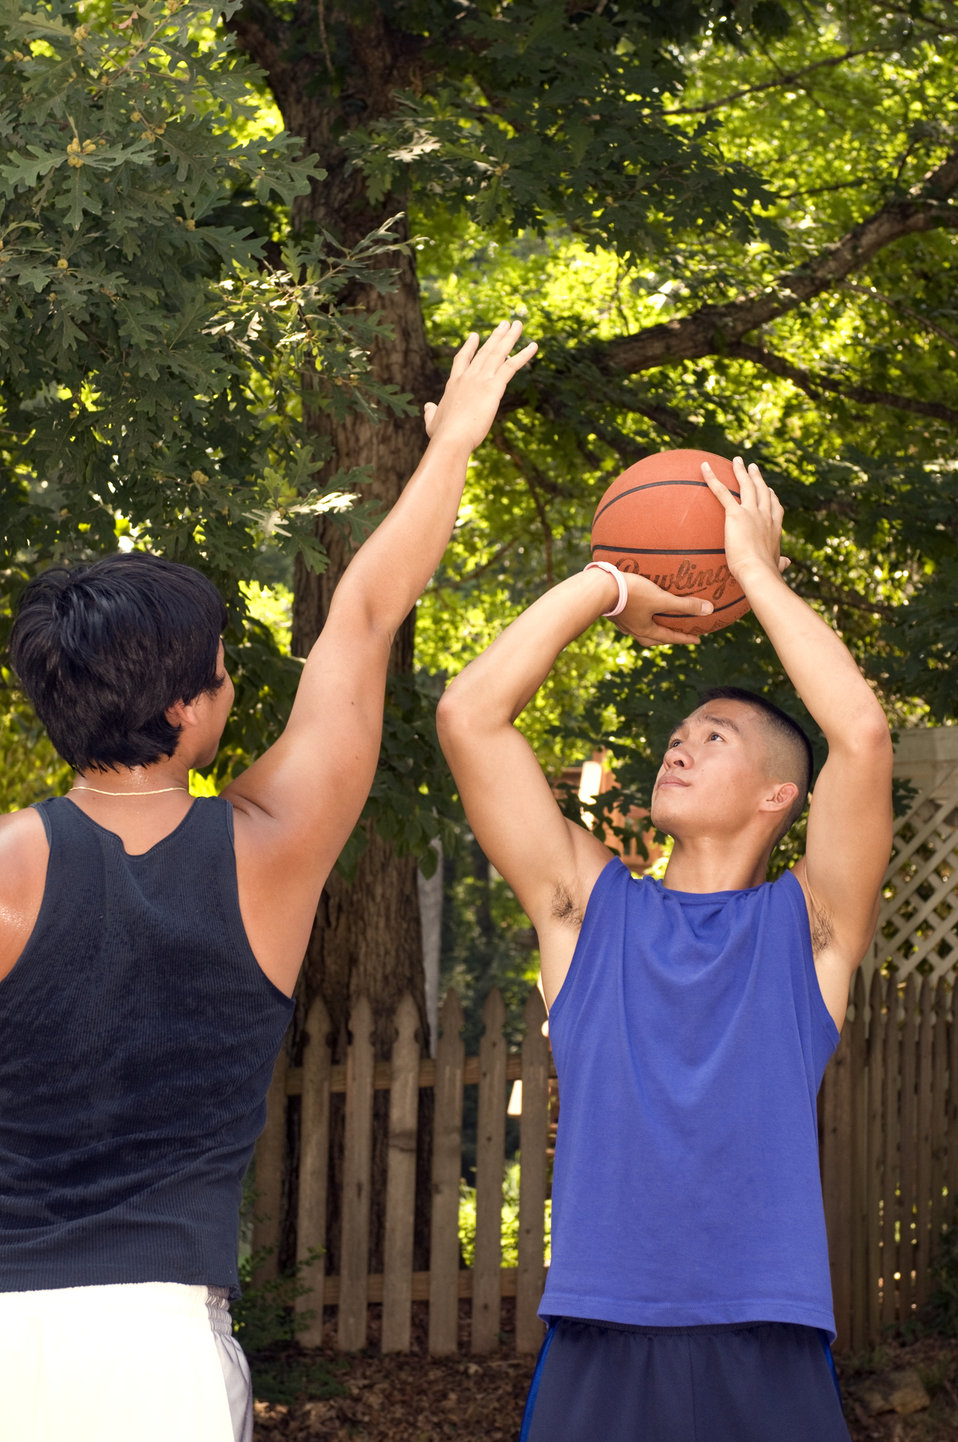 These young men were practicing their moves on a basketball court during a casual game on a nice sunny Georgia day.  In this particular view